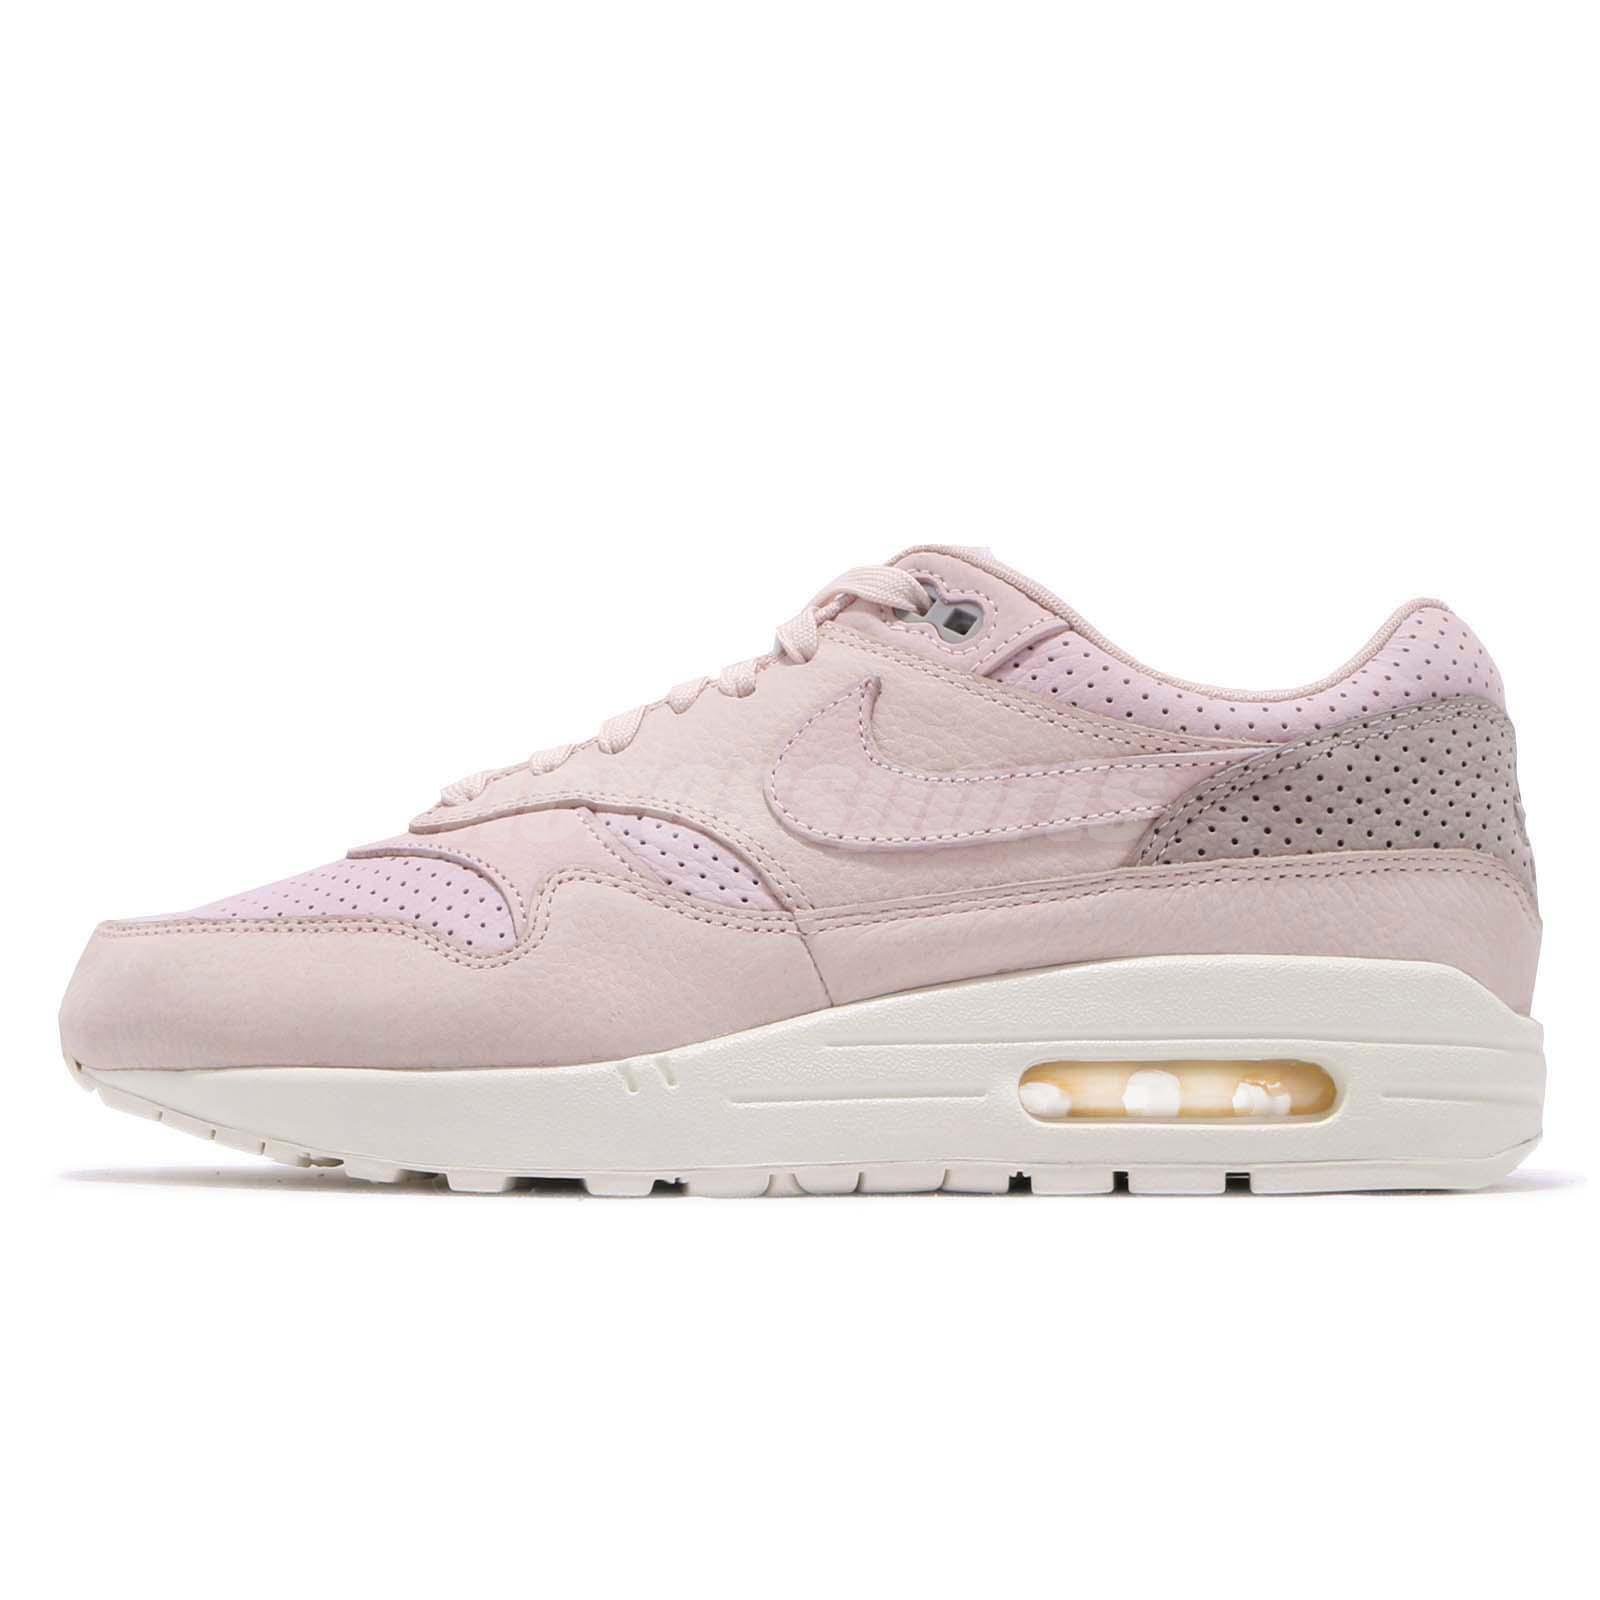 best service 1d53f 9d9f4 Nike NikeLab Air Max 1 Pinnacle Silt Red Pearl Pink Men Running Shoes  859554-600